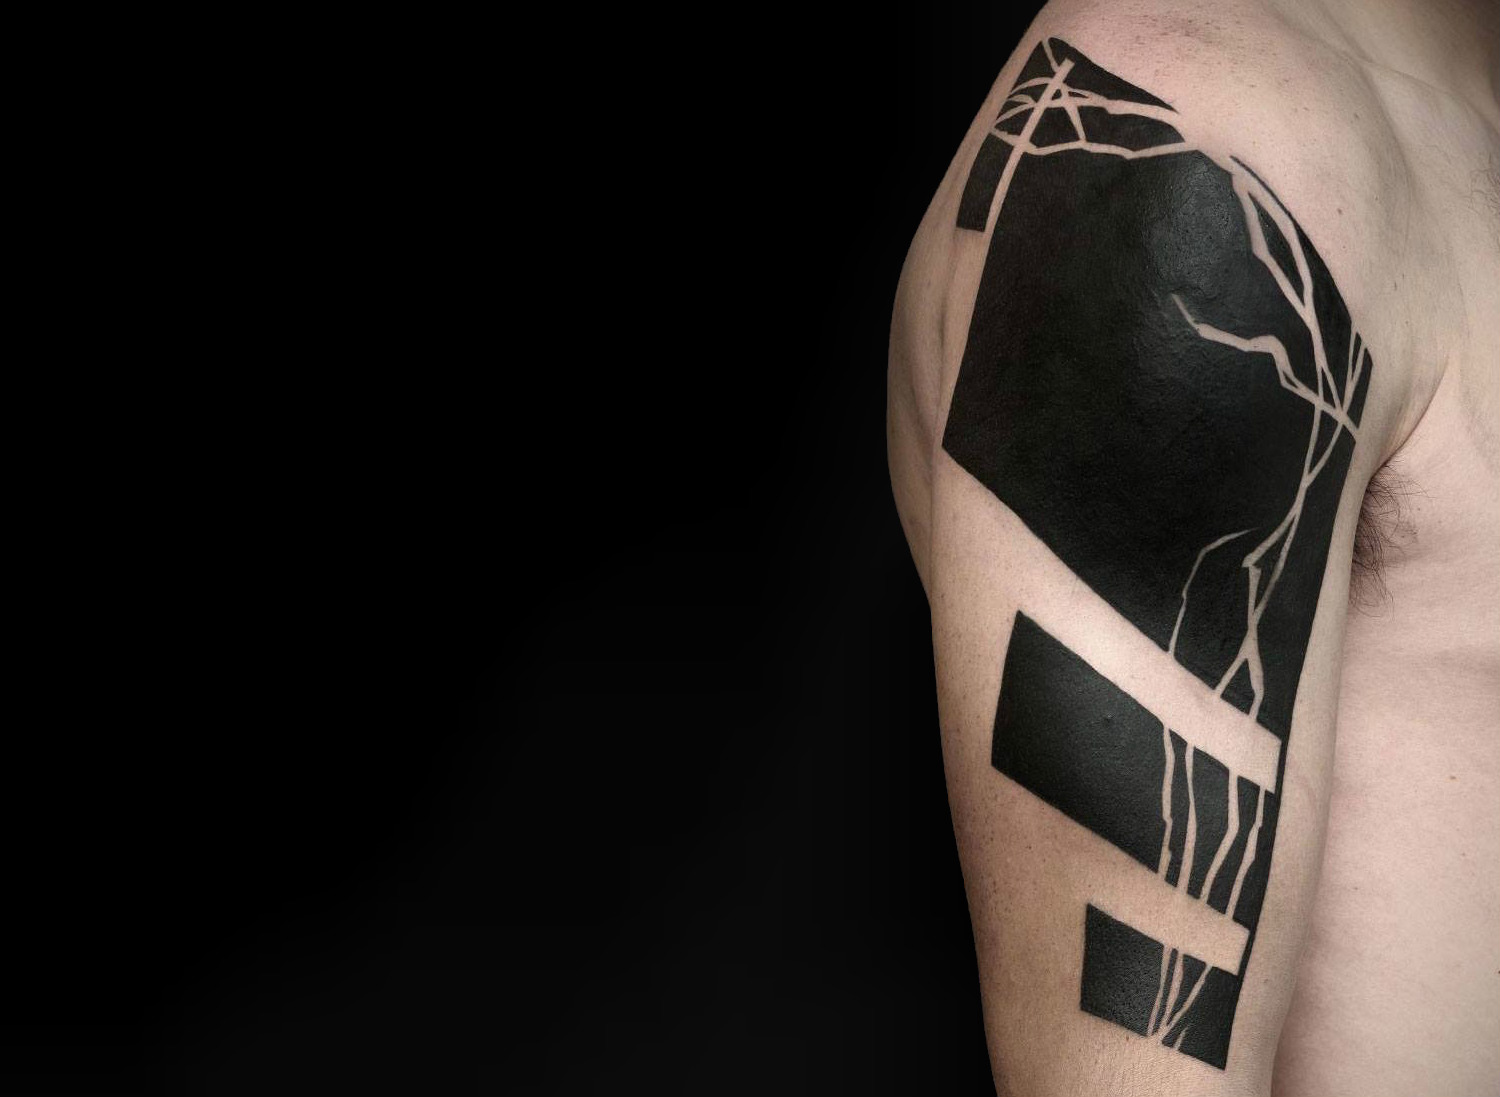 Heavy blackwork tattoo by Olivier Poinsignon